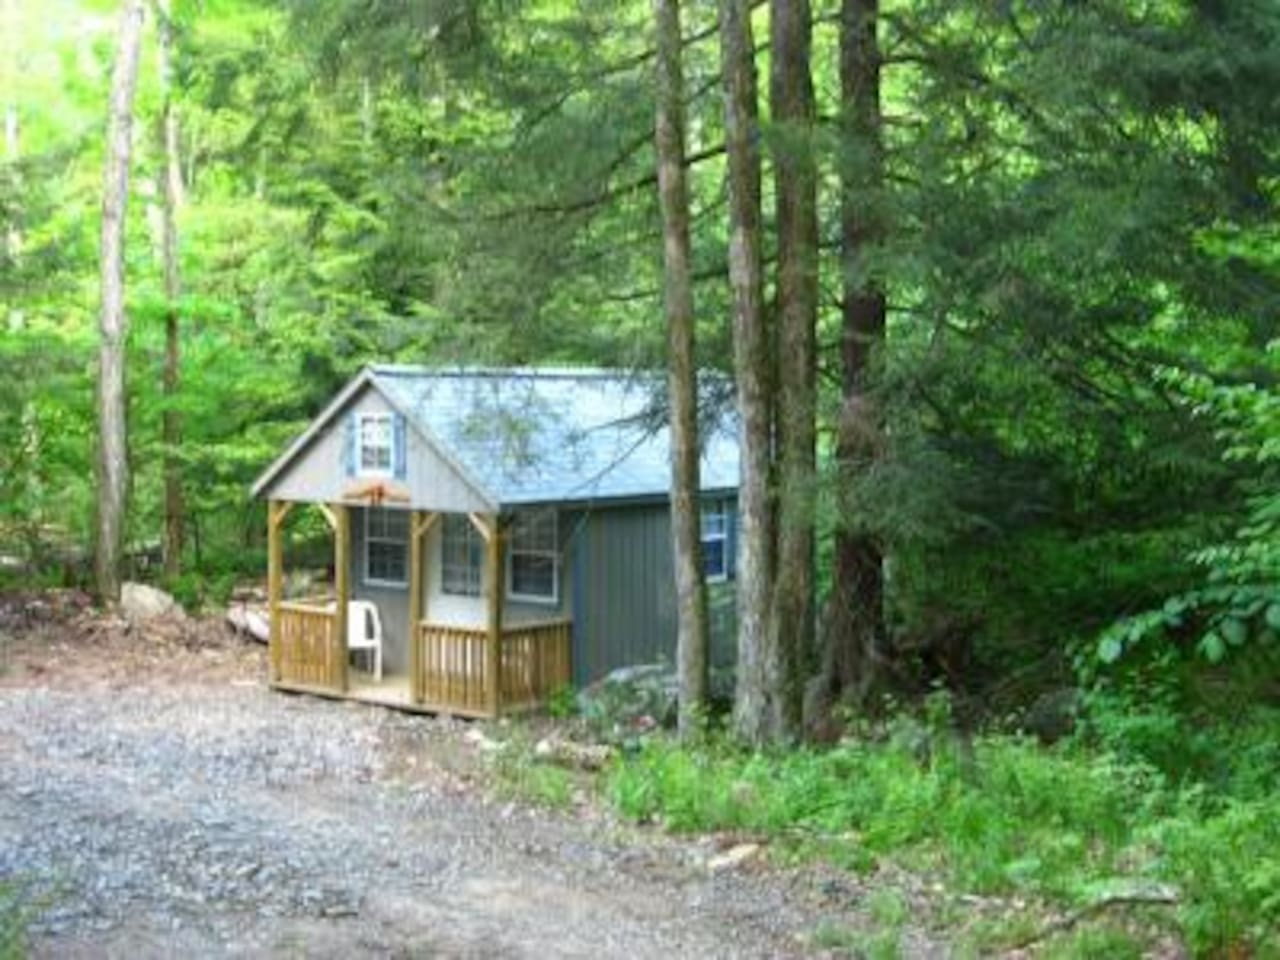 A peaceful, secluded setting surrounded by hemlock trees.